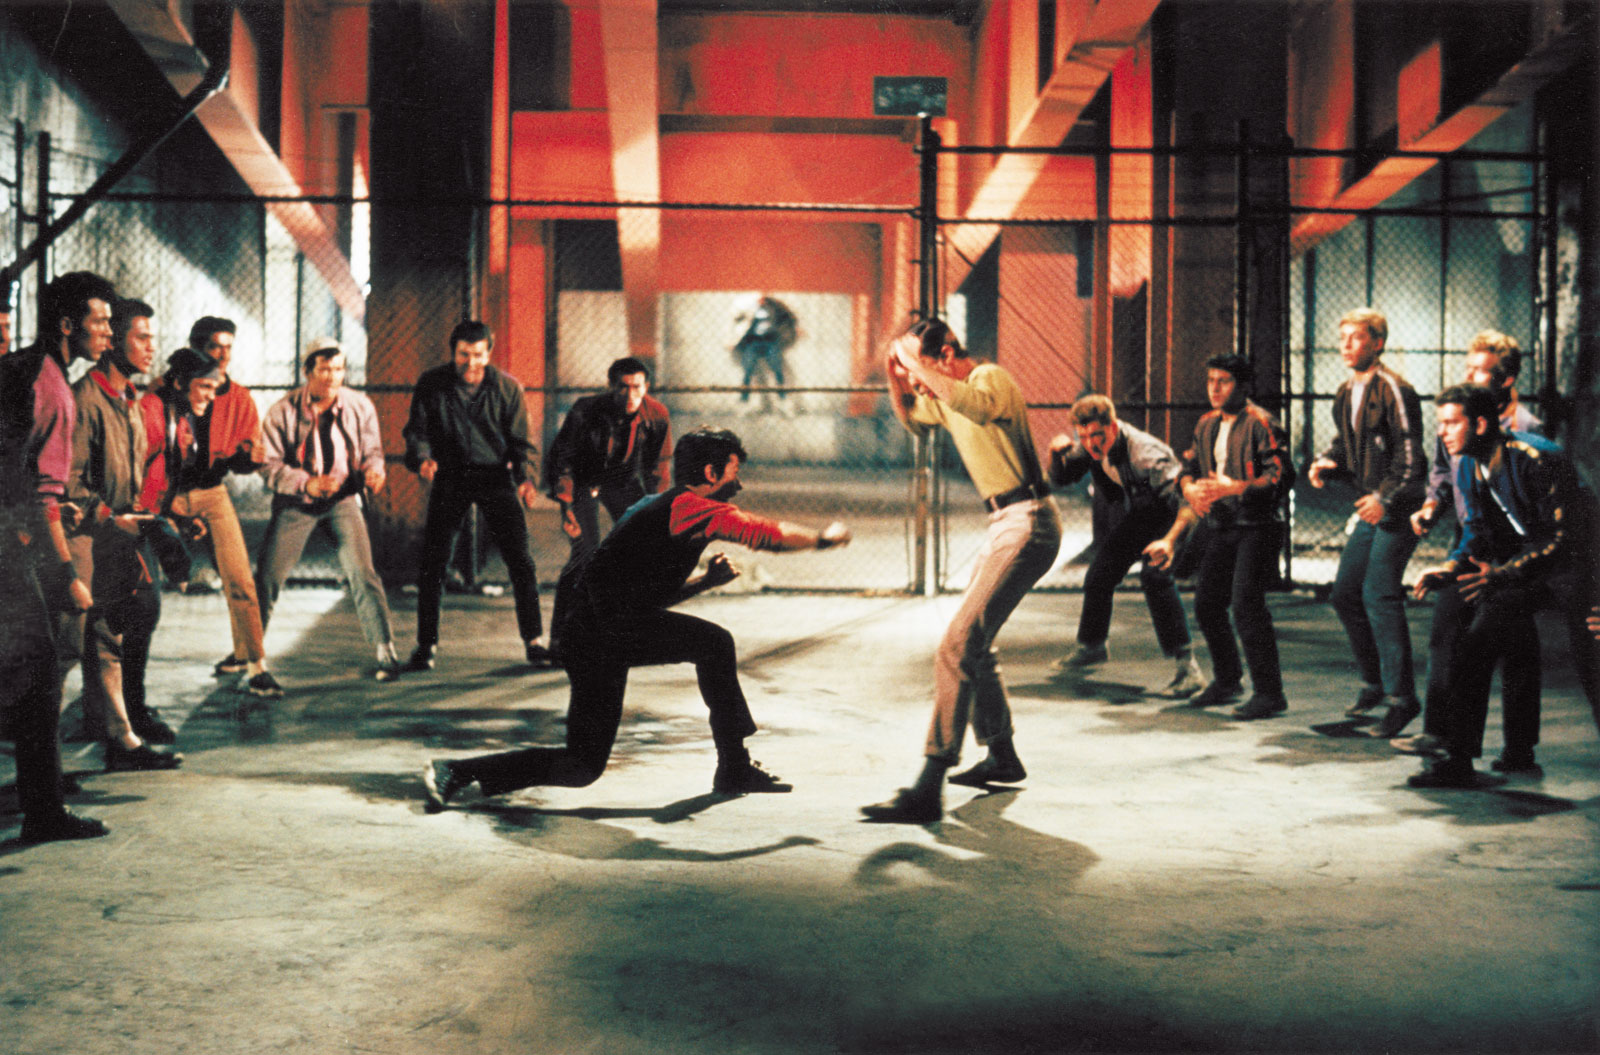 west side story Although west side story was named the best picture of 1961 and won 10 academy awards, it is not much mentioned by movie fans these days, and the old warhorse.